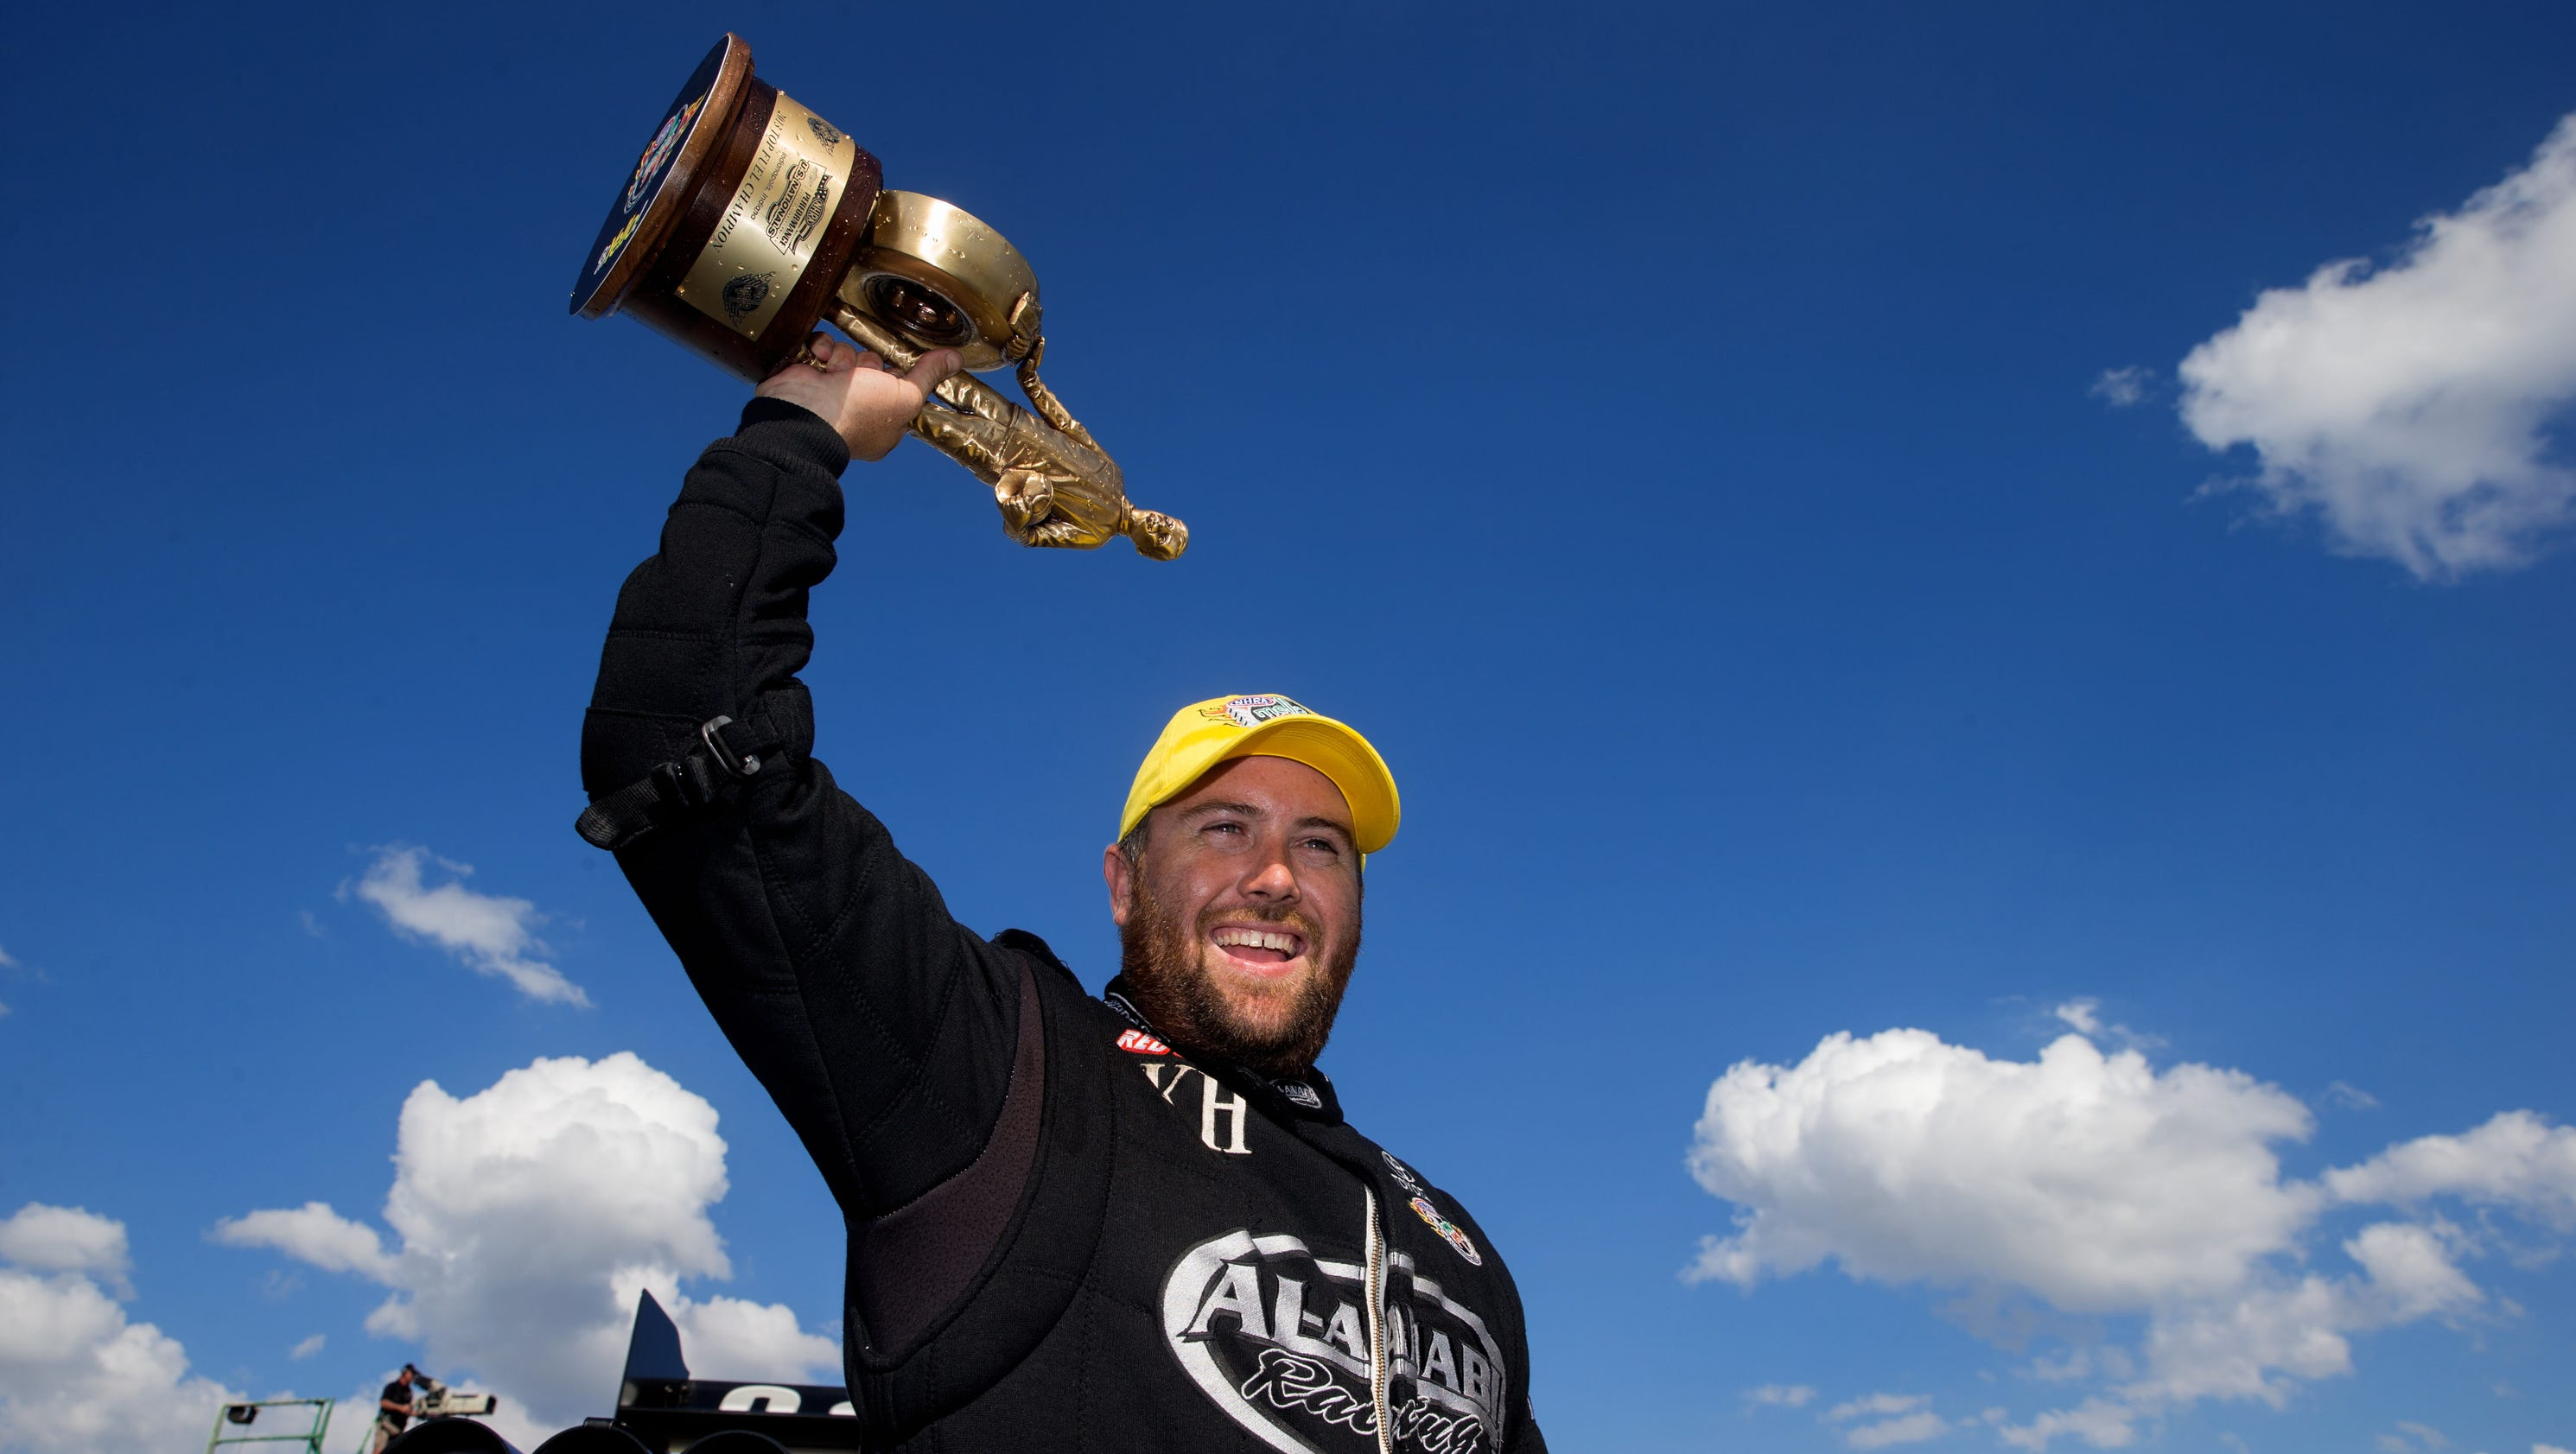 Top Fuel Leader Langdon Has Double Win Weekend In Indy